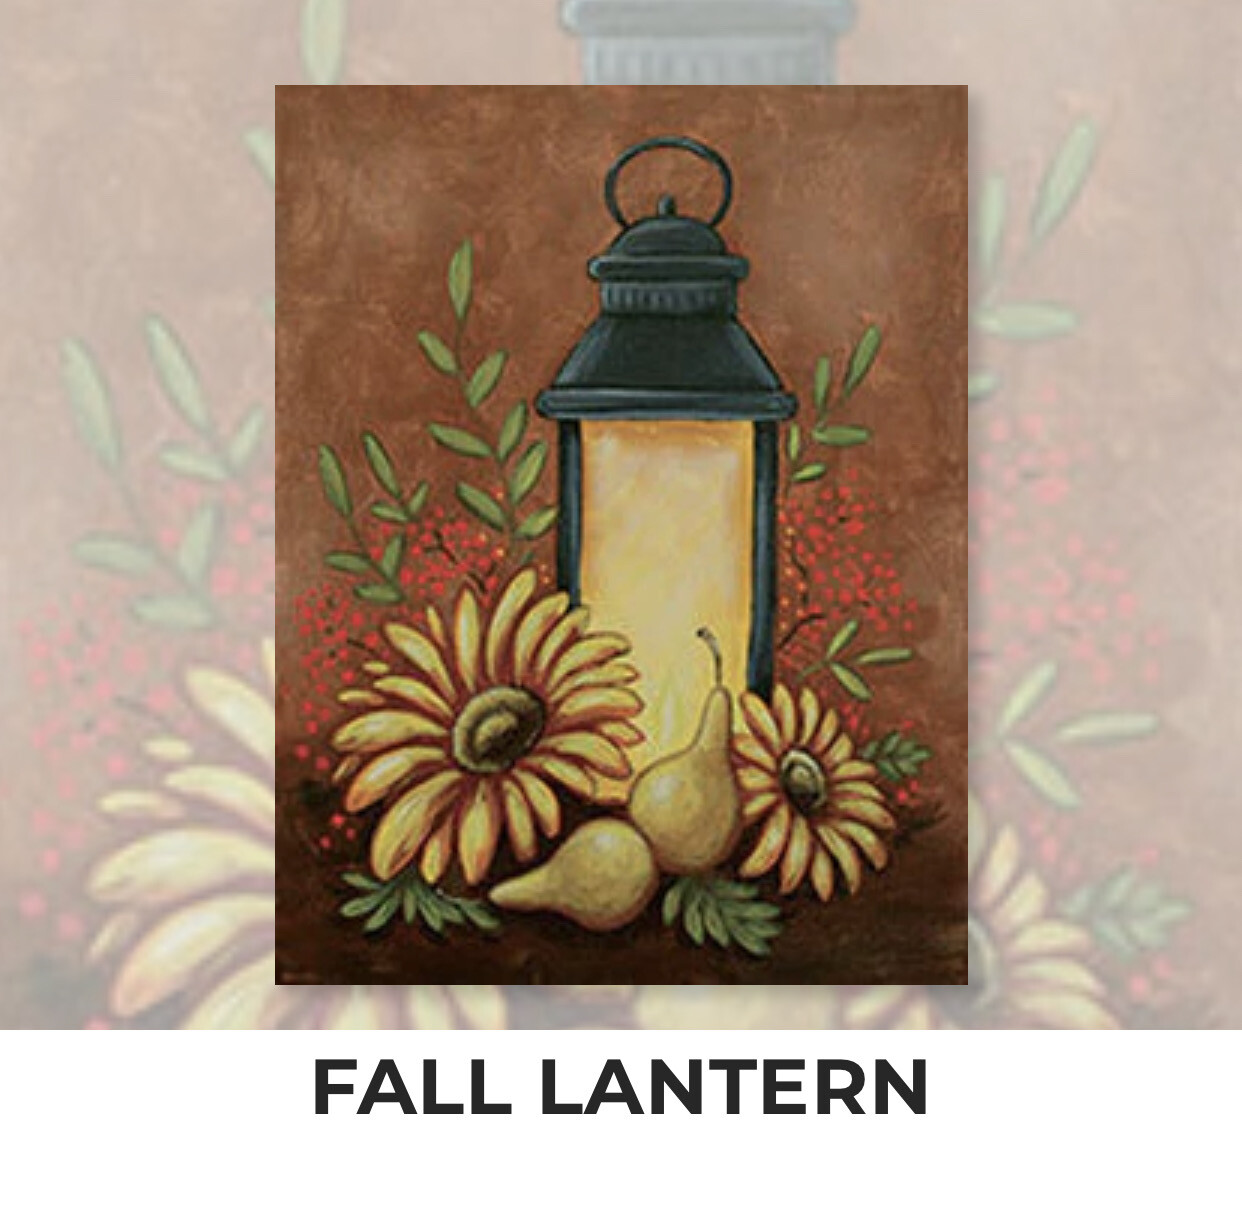 Fall Lantern ADULT Acrylic Paint On Canvas DIY Art Kit - 3 Week Special Order